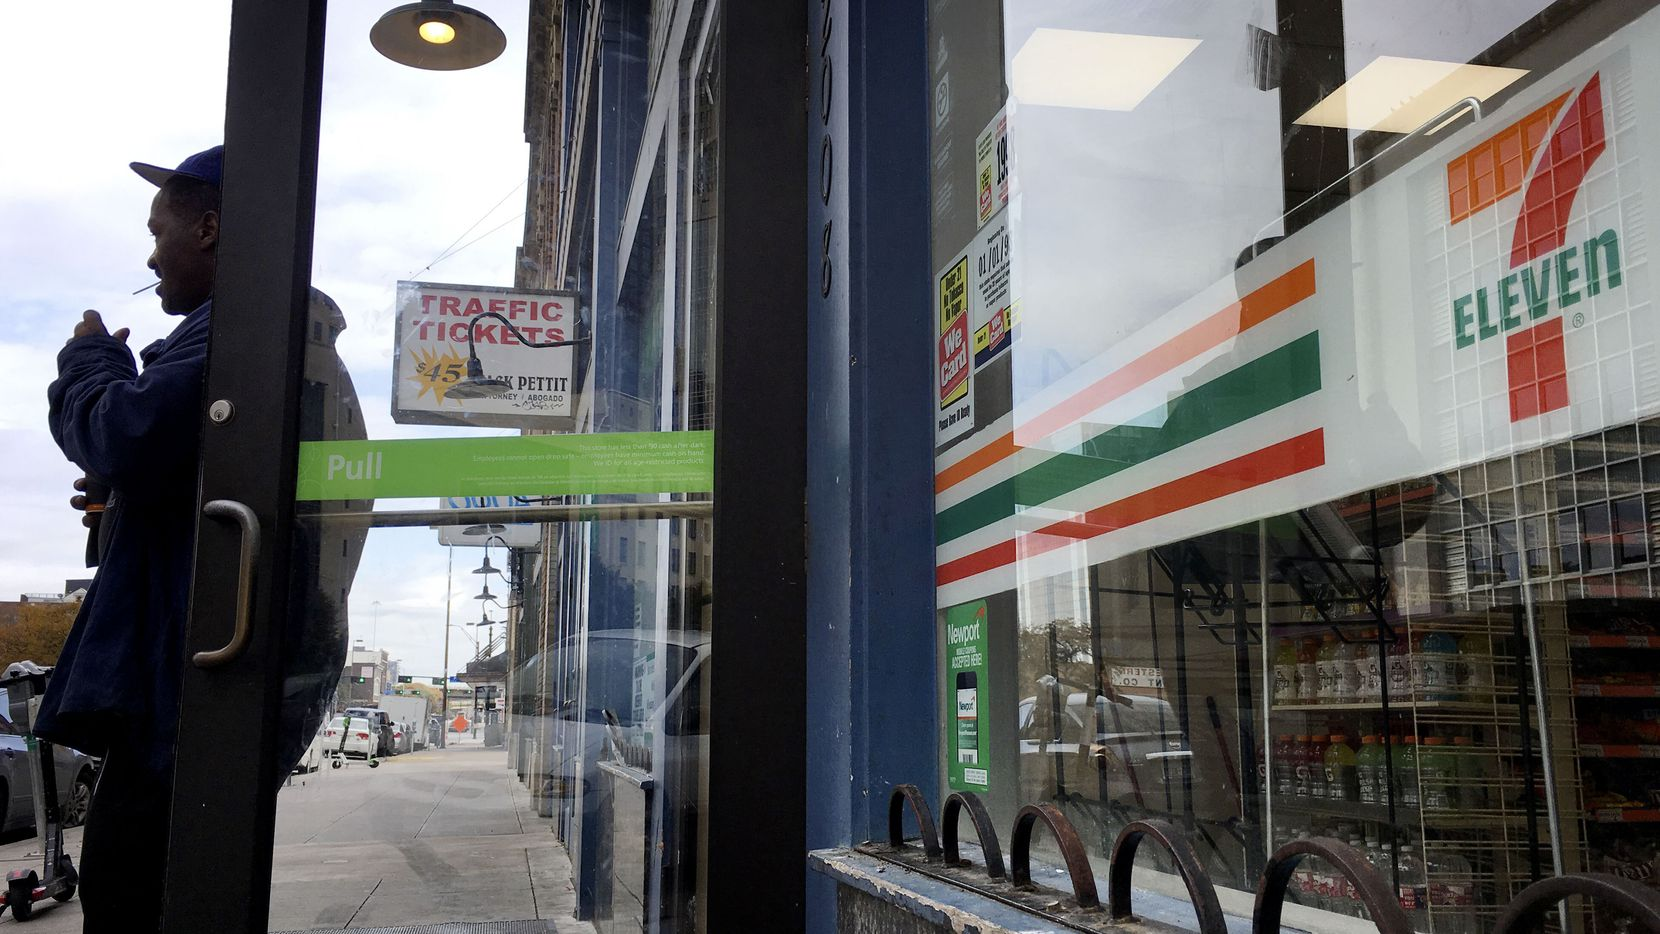 An ATM was stolen from the 7-Eleven at Commerce and Harwood streets in downtown Dallas on Wednesday.